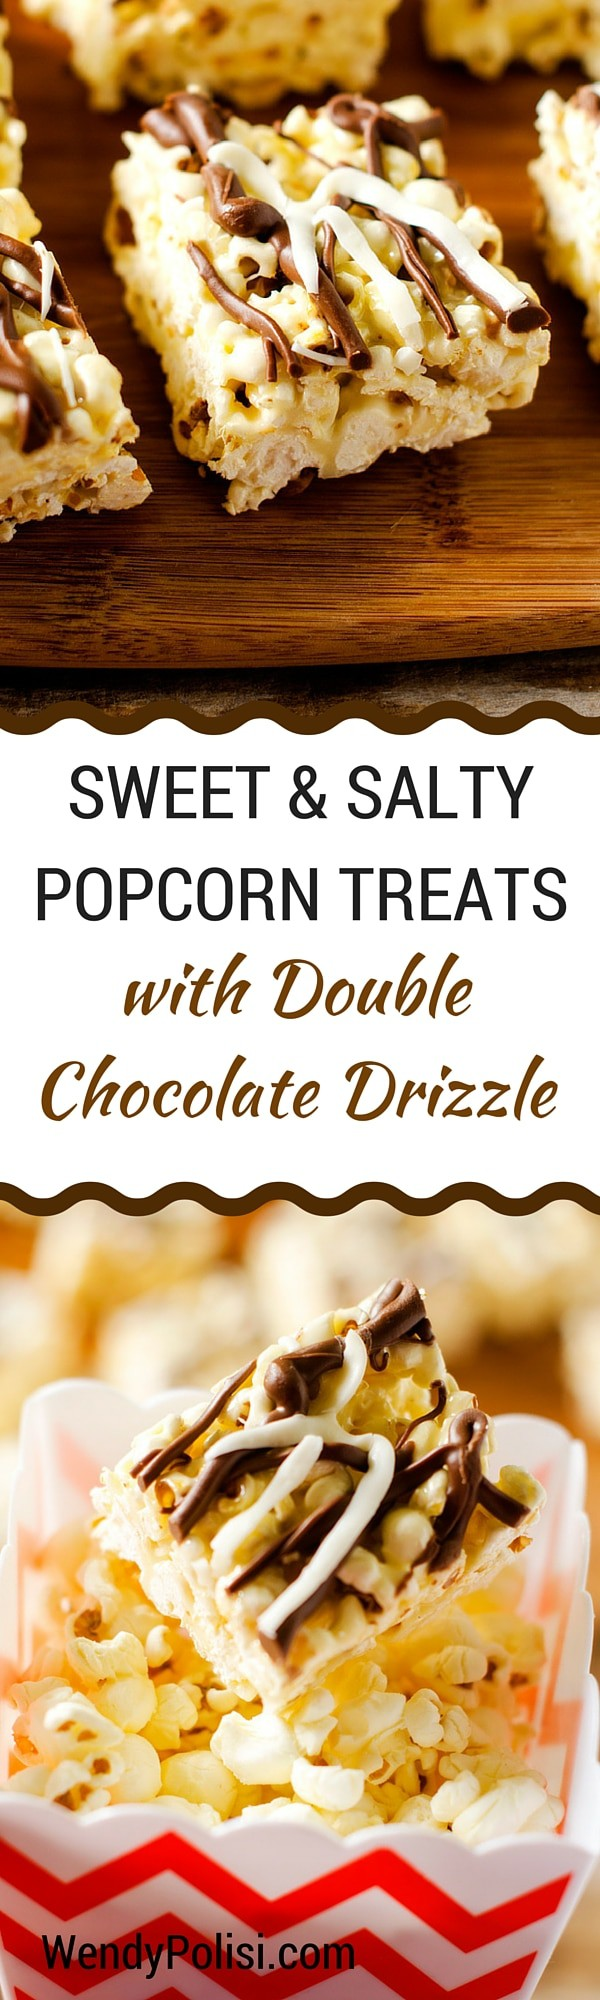 Sweet & Salty Popcorn Treats with Double Chocolate Drizzle